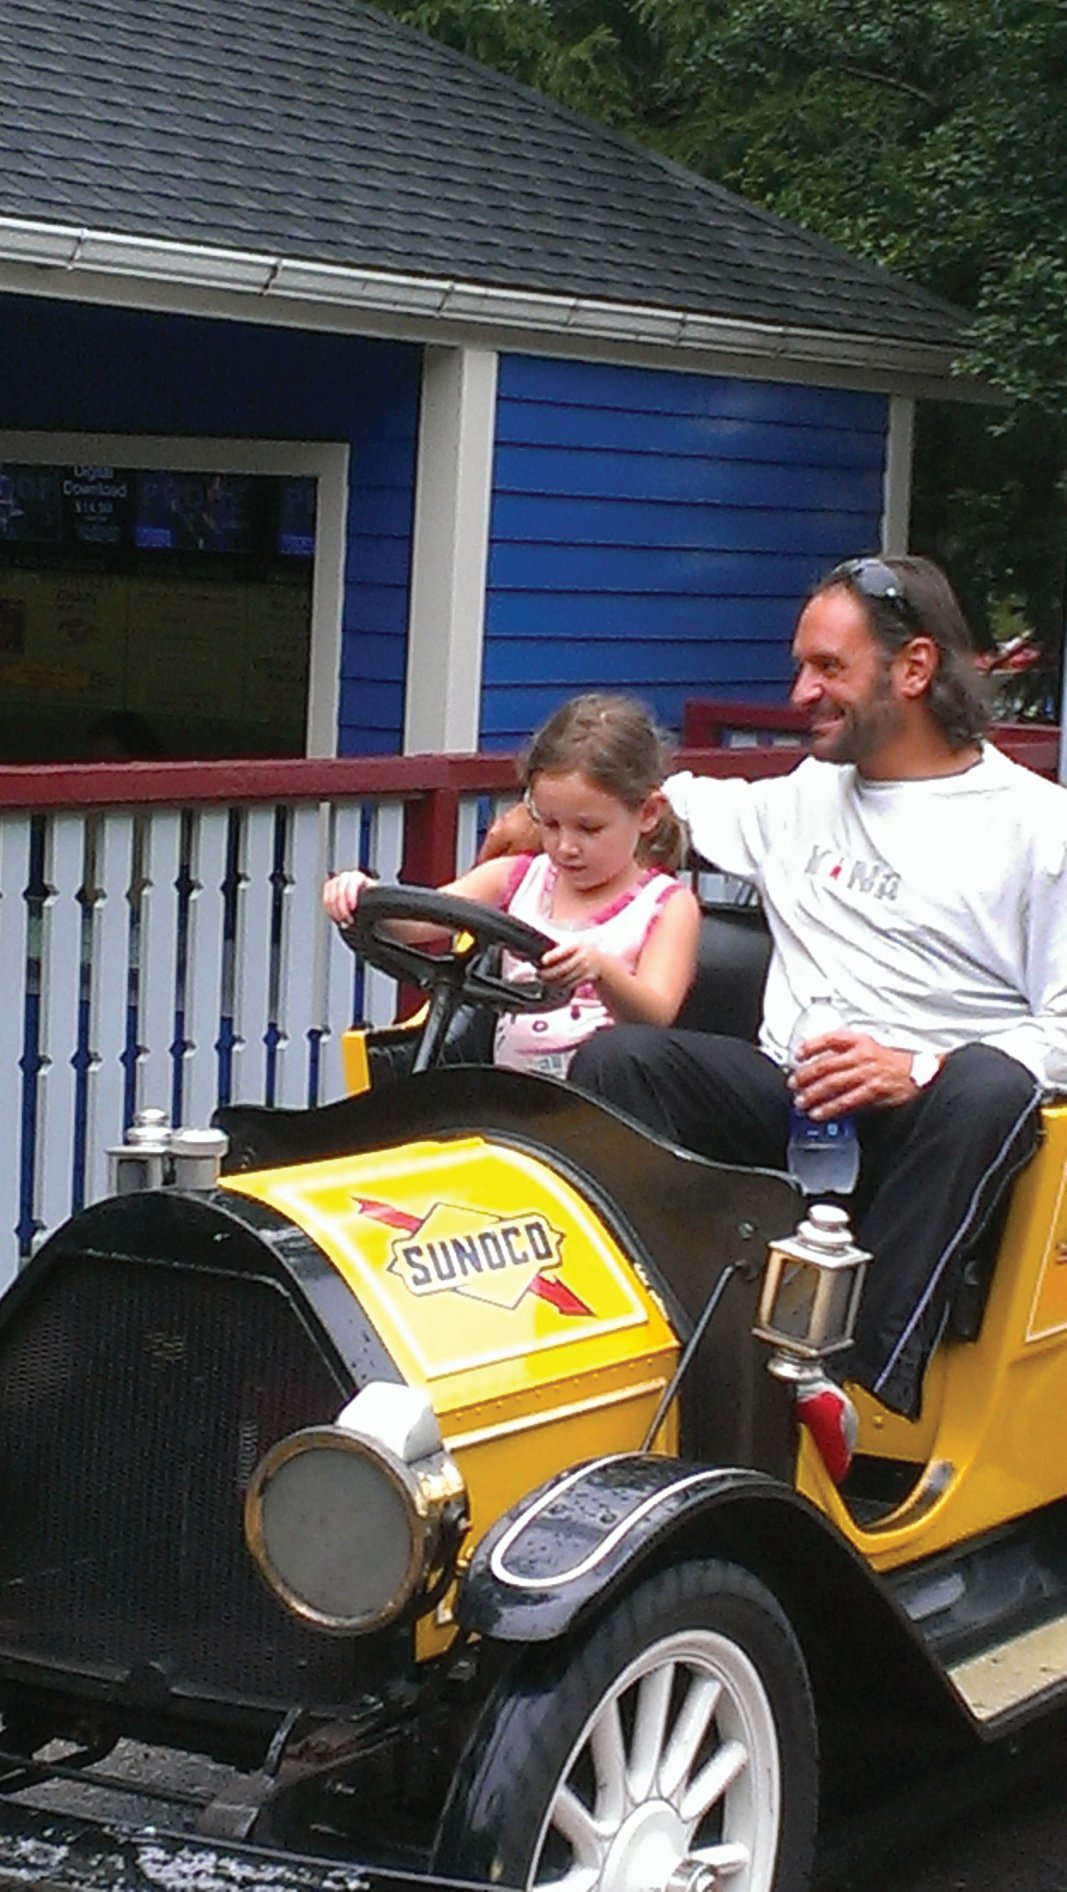 Father spending quality time with his daughter, it made her day! #handsondad